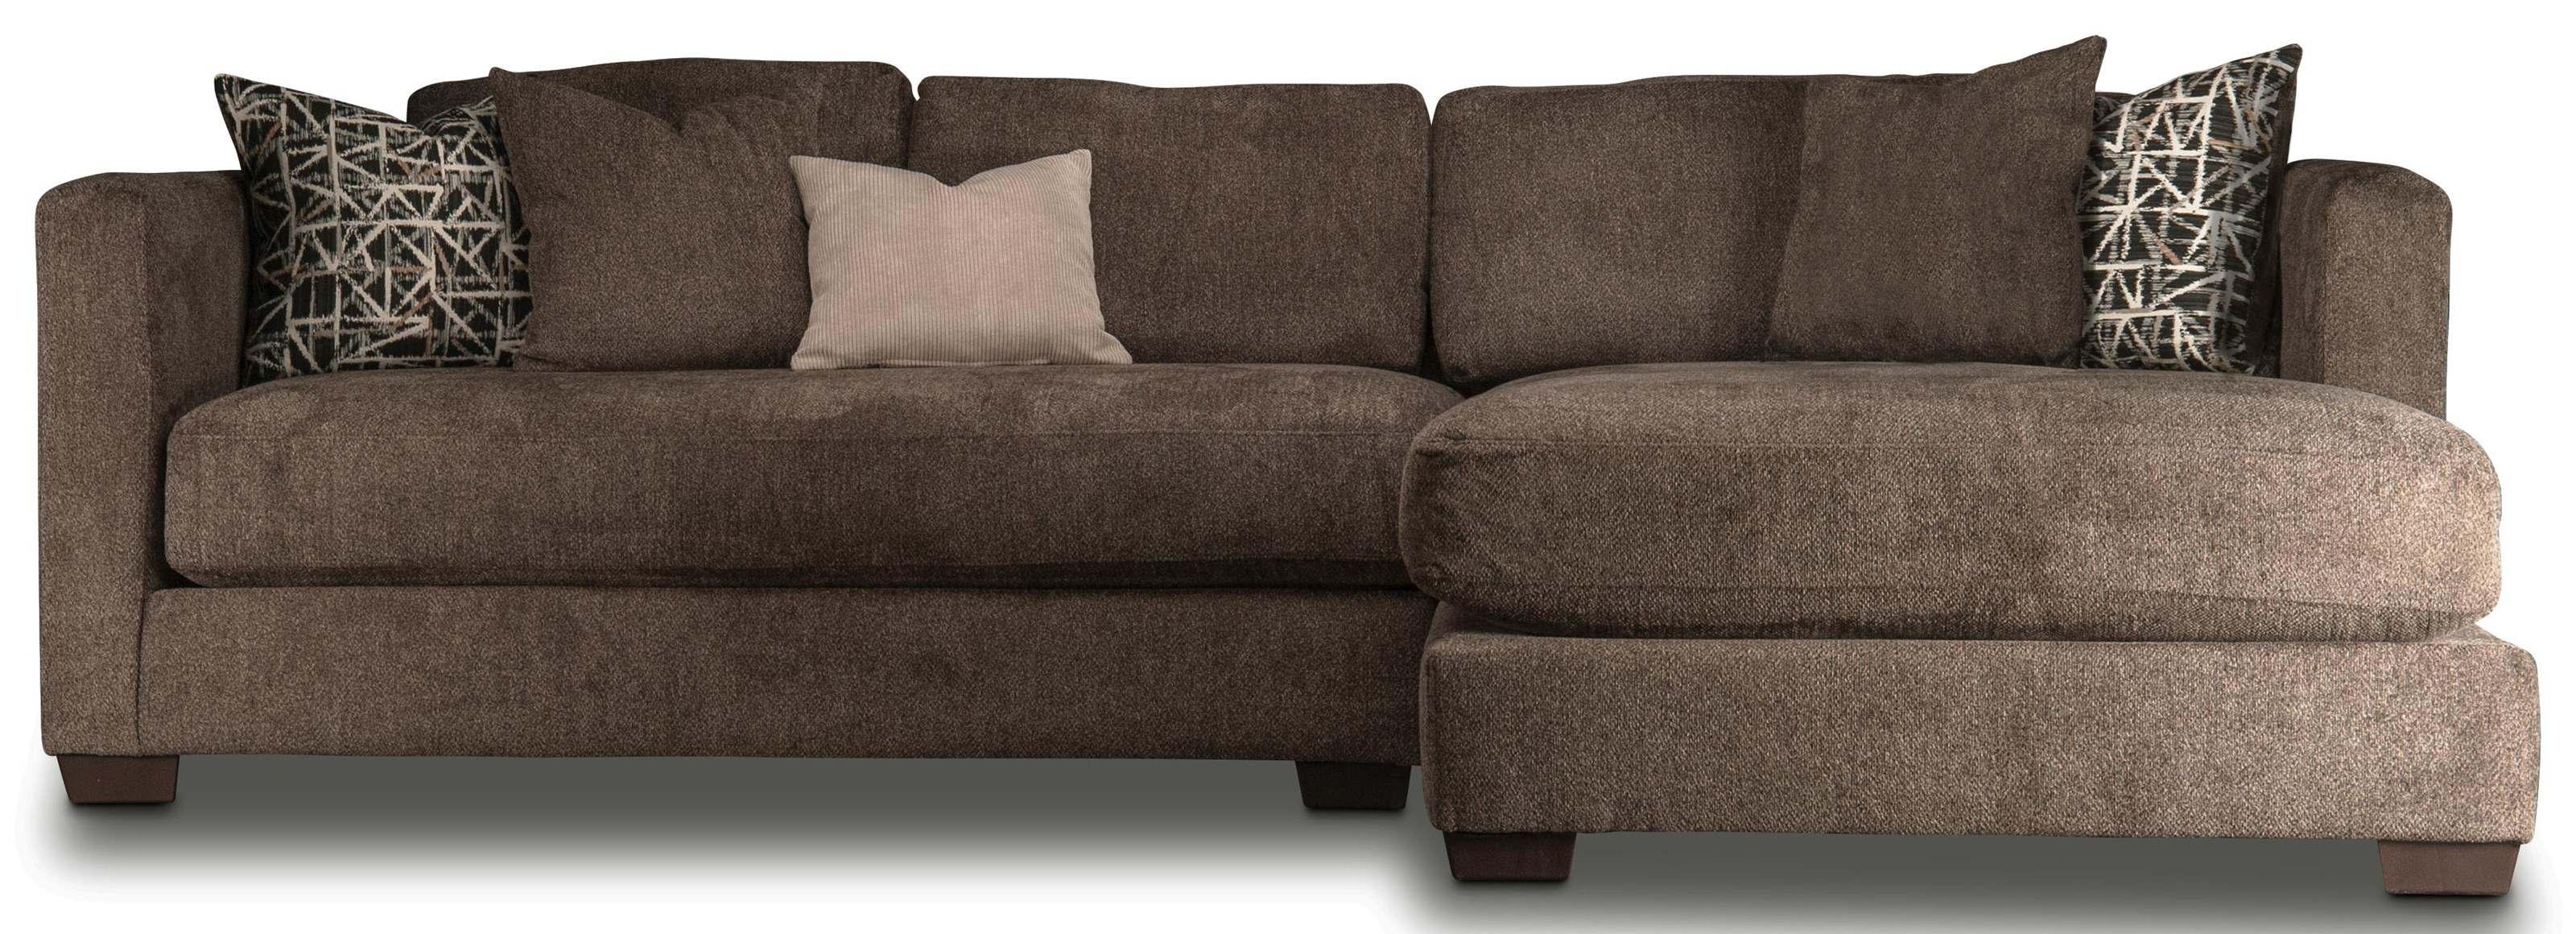 Burke Burke Sectional with Chaise by Peak Living at Morris Home